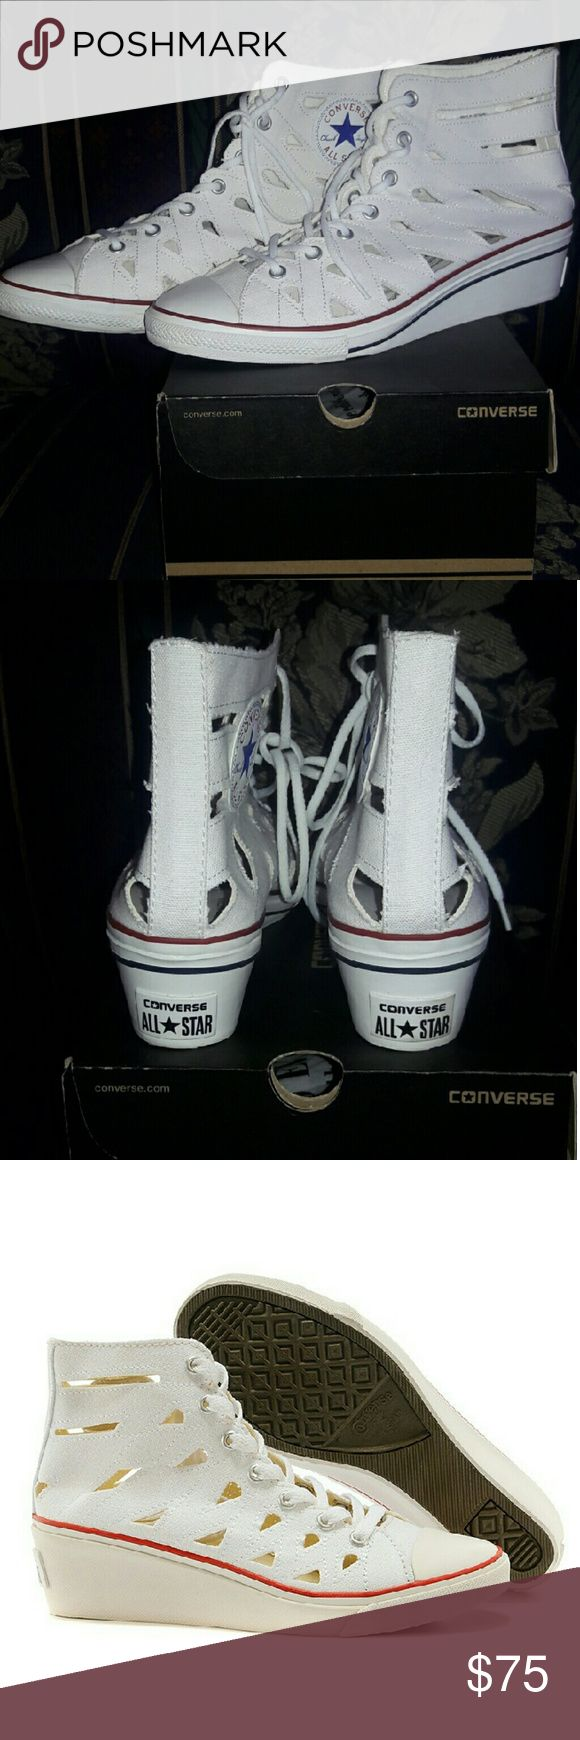 "CONVERSE CHUCK TAYLOR HI NESS CUTOUT SNEAKERS New Converse Chuck Taylor All Star Hi Ness Cutout Wedge Sneaker. The Hi Ness Cutout mid-top sneaker has a raised wedge heel. New, never worn. Size: 11M Color: White Canvas upper Lace-up closure Cutout detailing Chuck Taylor All Star patch logo Rubber cap toe Canvas lining Cushioned footbed 1 3/4"" wedge heel Converse Shoes Sneakers"